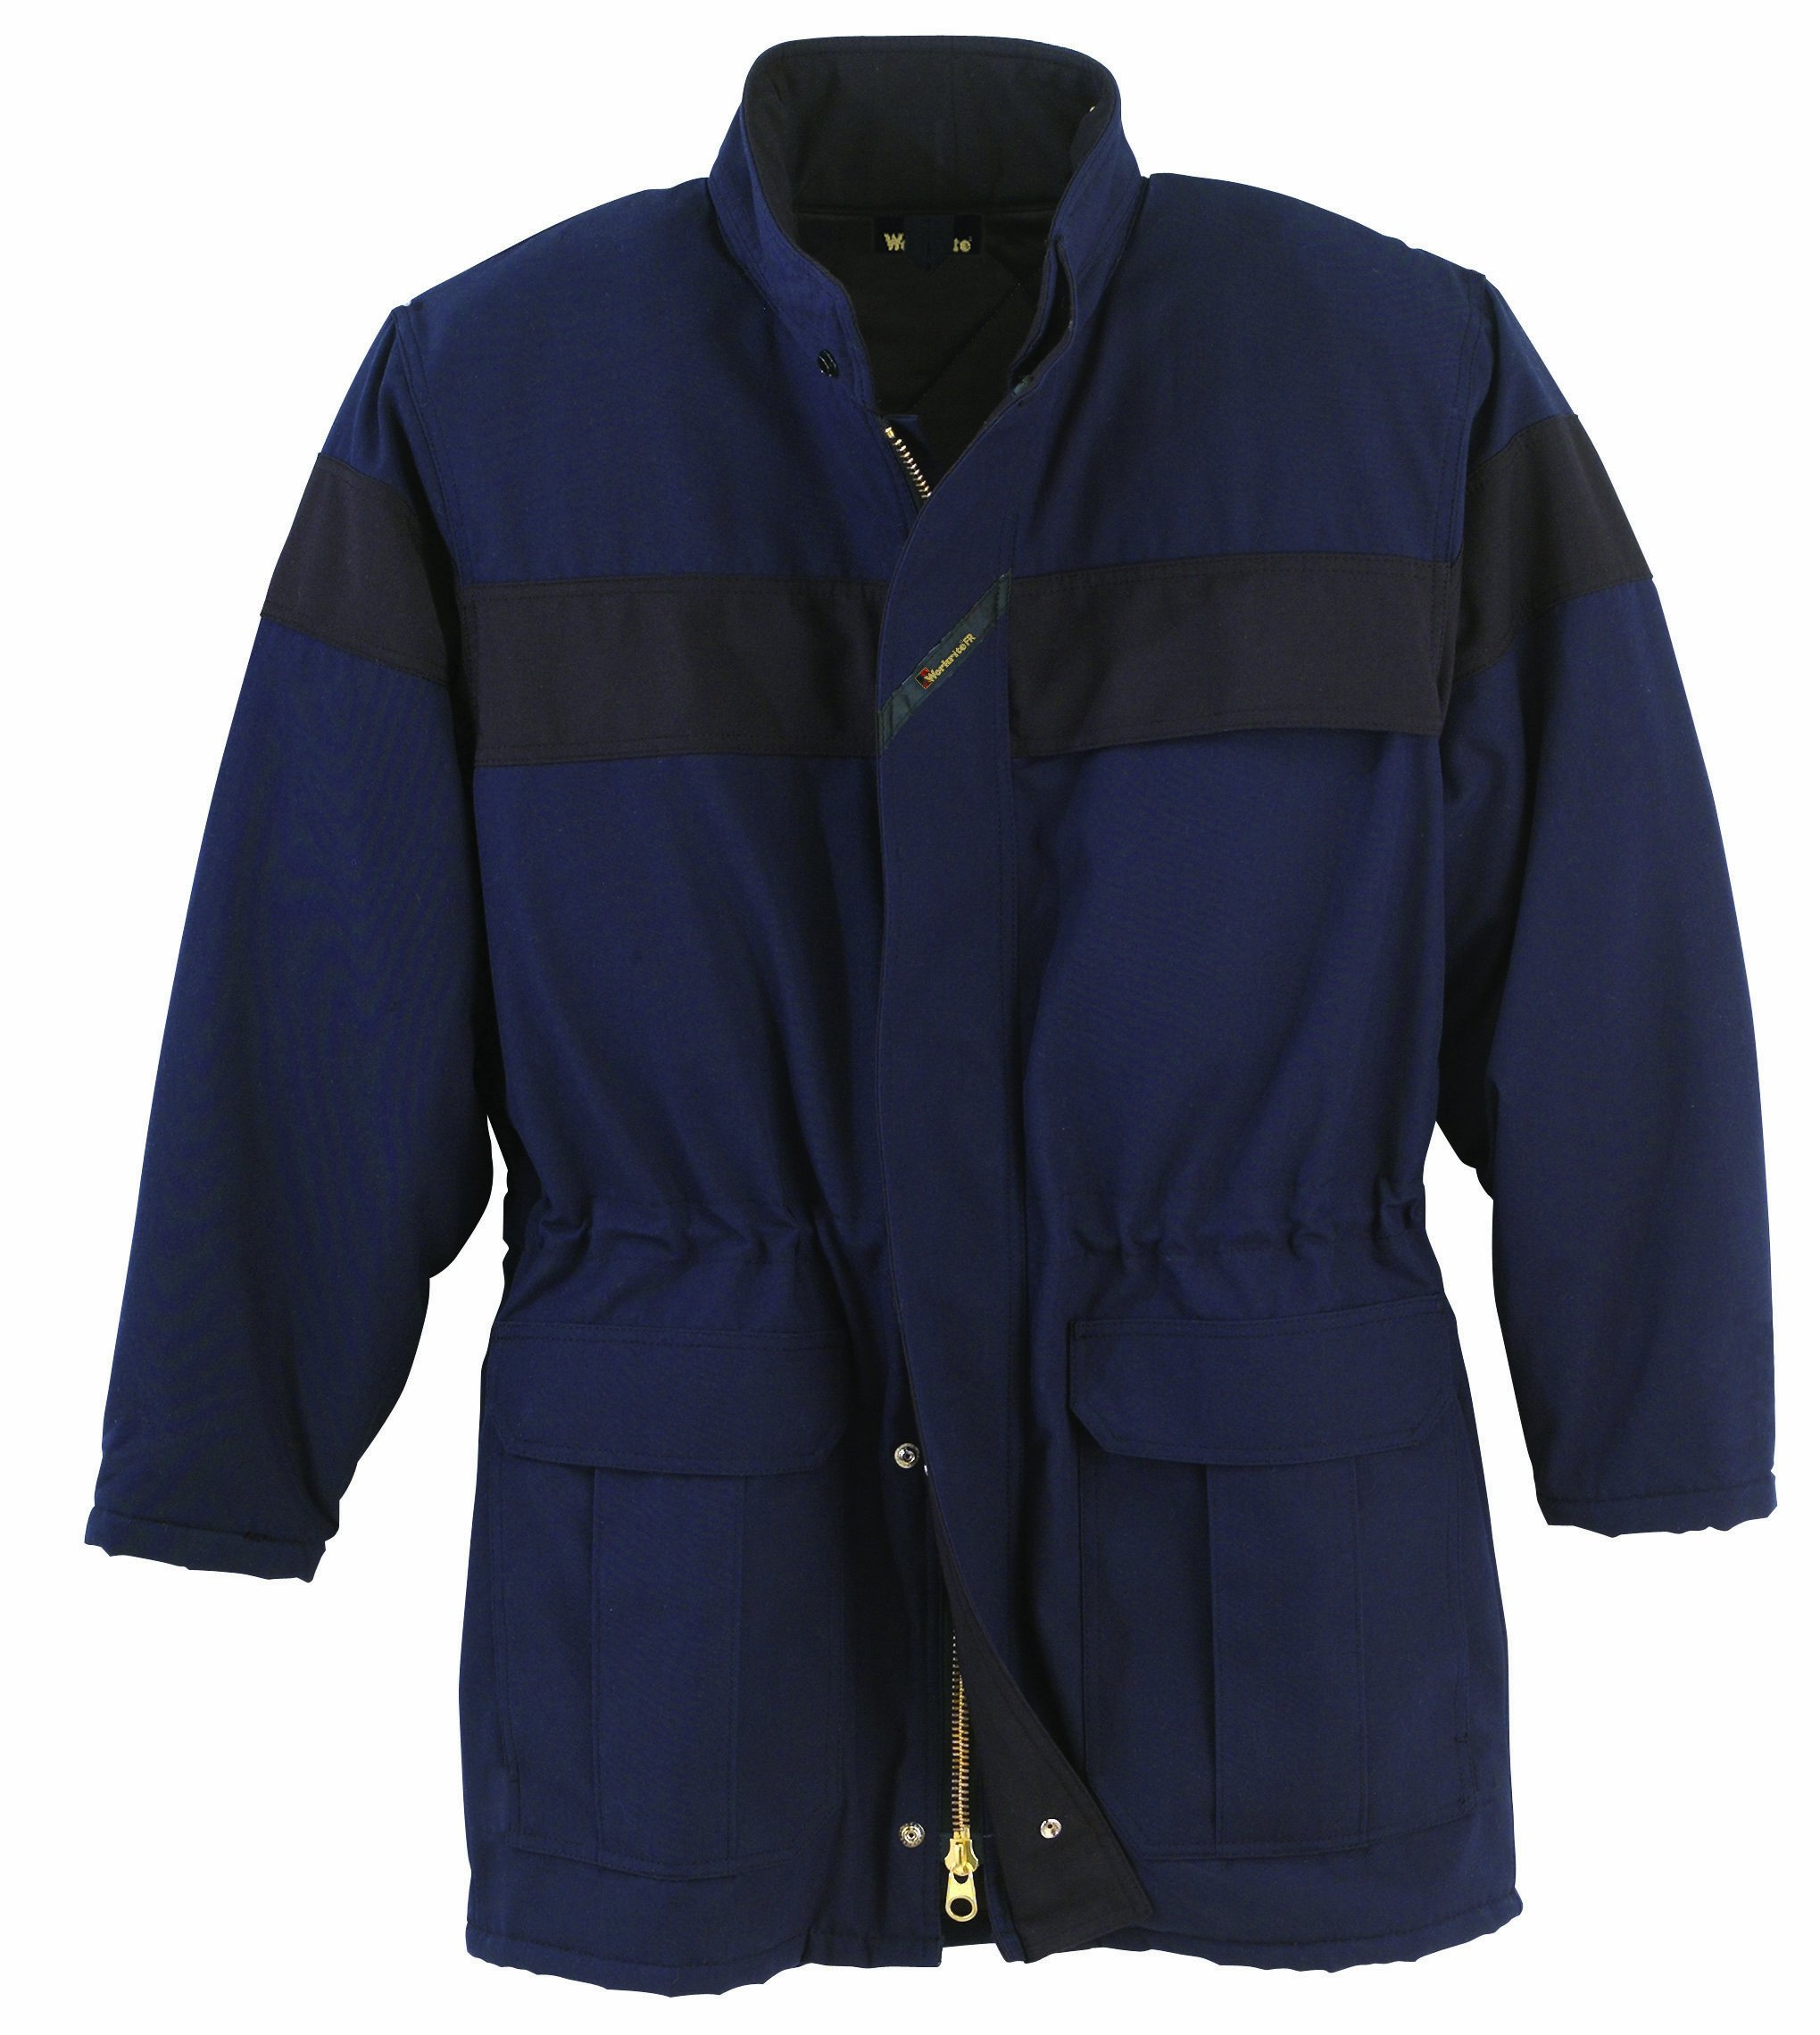 Workrite FR Flame Resistant 7 oz UltraSoft Insulated Parka, Rib-Knit Cuff, Large, Regular Length, Navy Blue